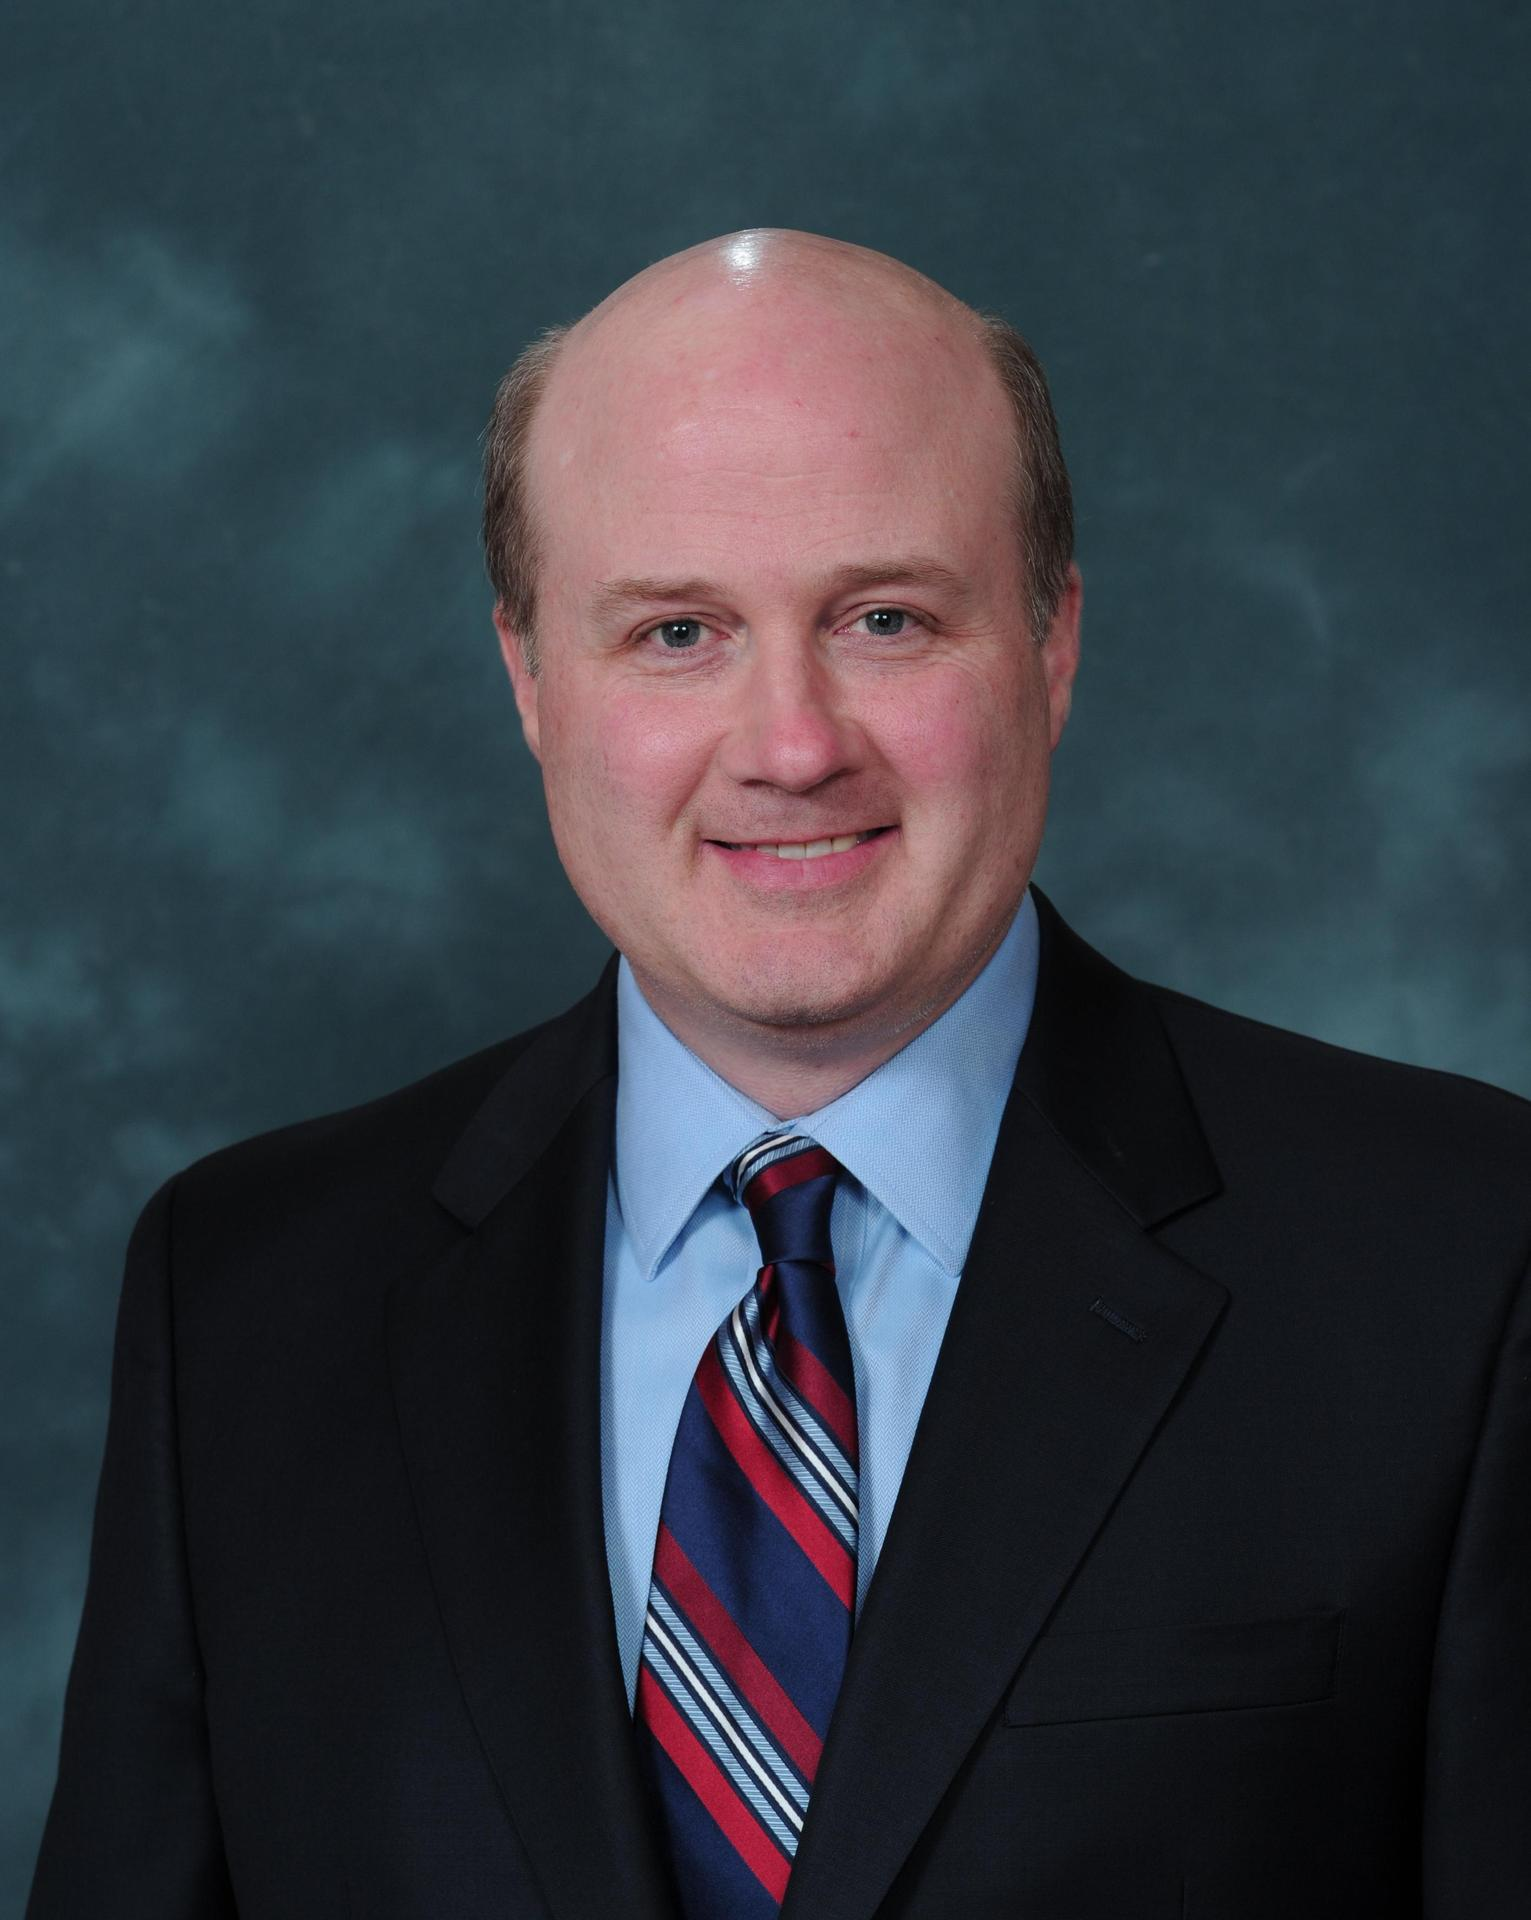 Dr. Brian Campbell, Director of student learning grades 9-12